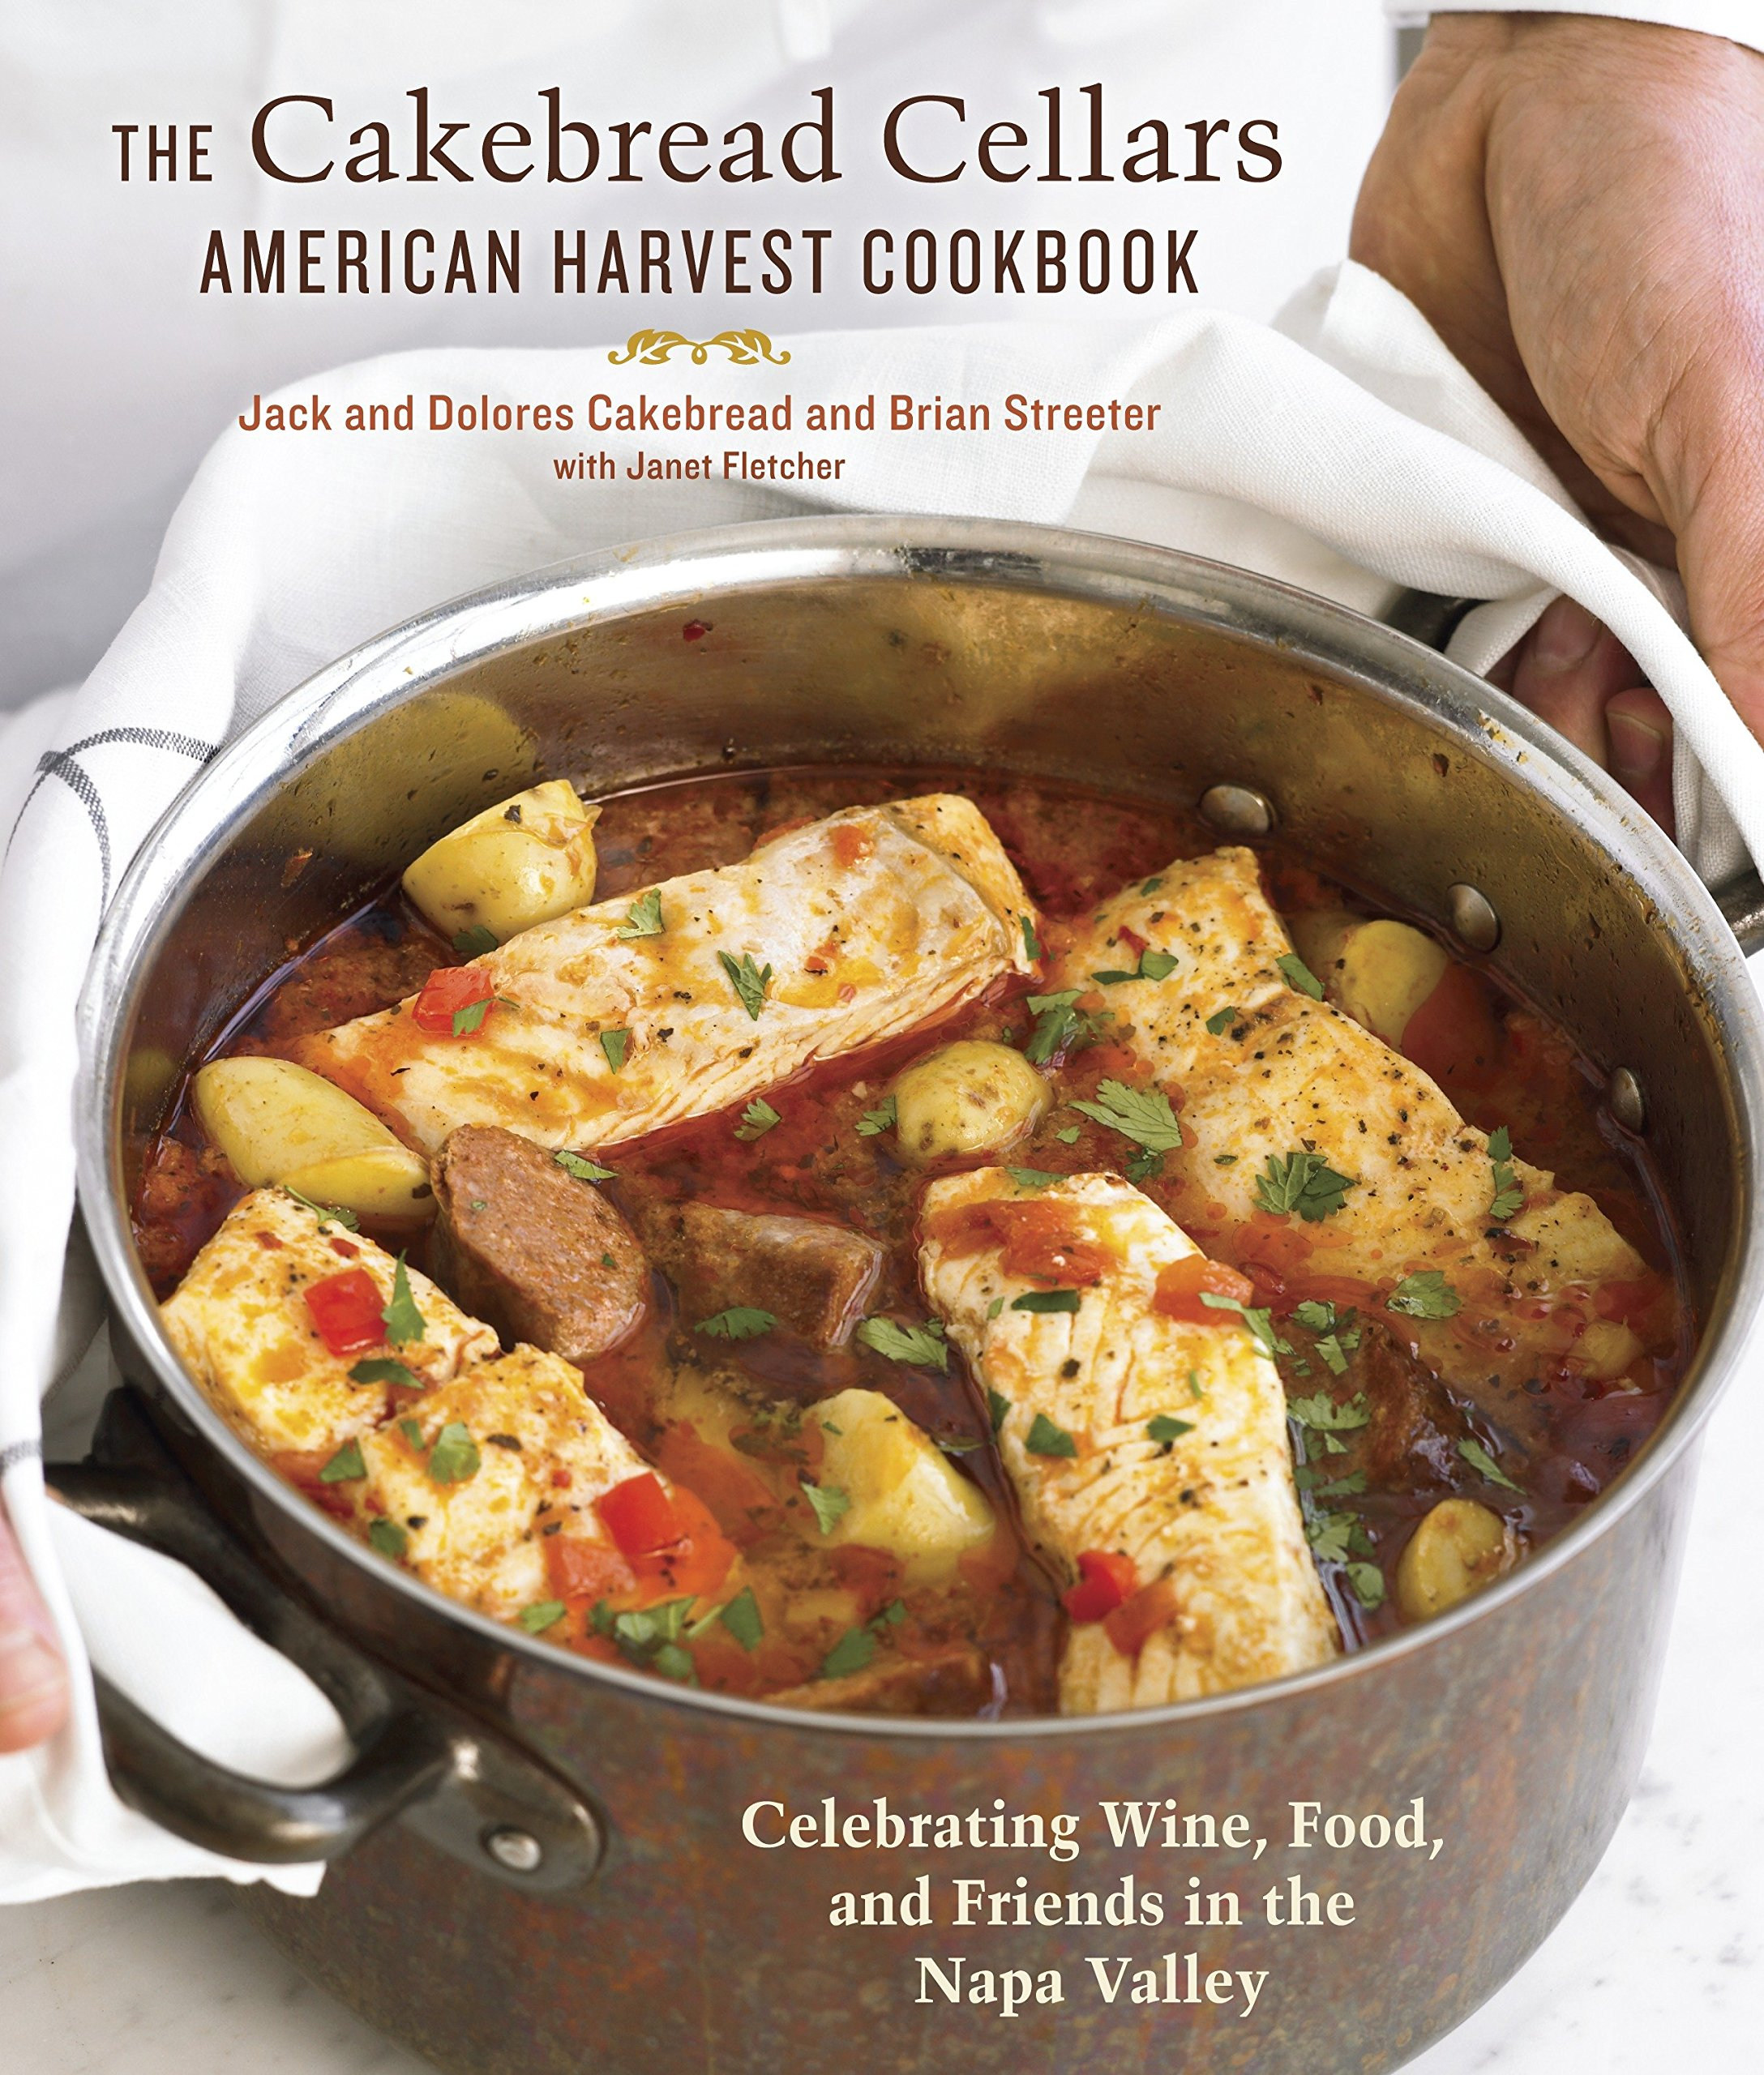 The Cakebread Cellars American Harvest Cookbook: Celebrating Wine, Food, and Friends in the Napa Valley pdf epub